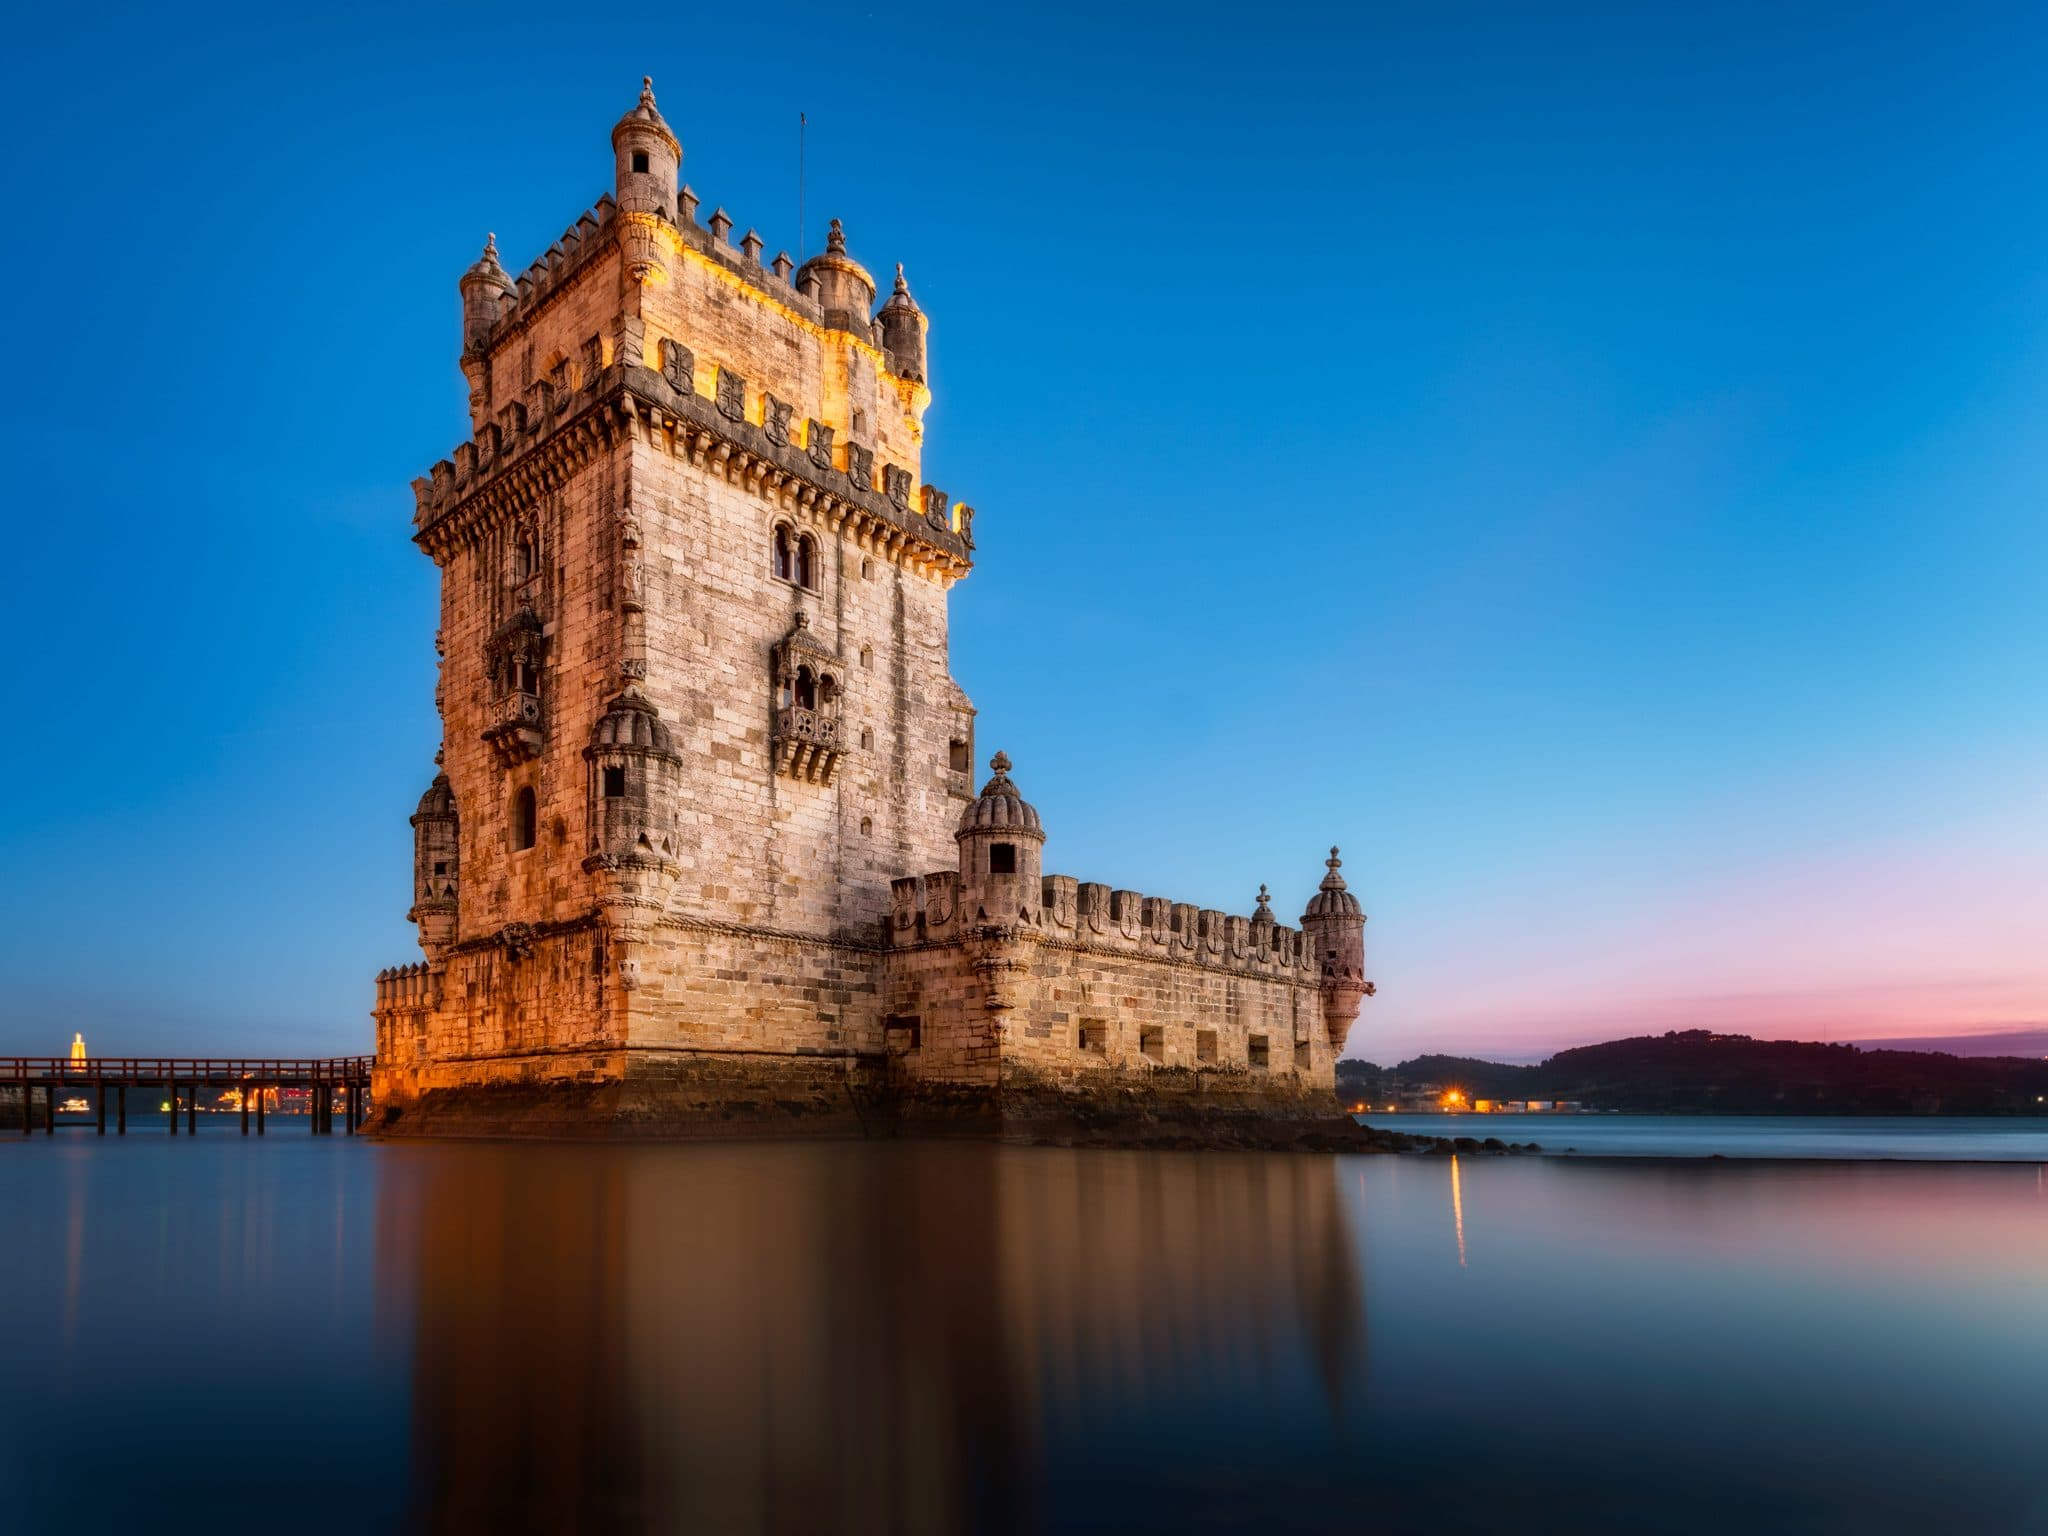 Belem Tower in Lisbon on an evening, Portugal.